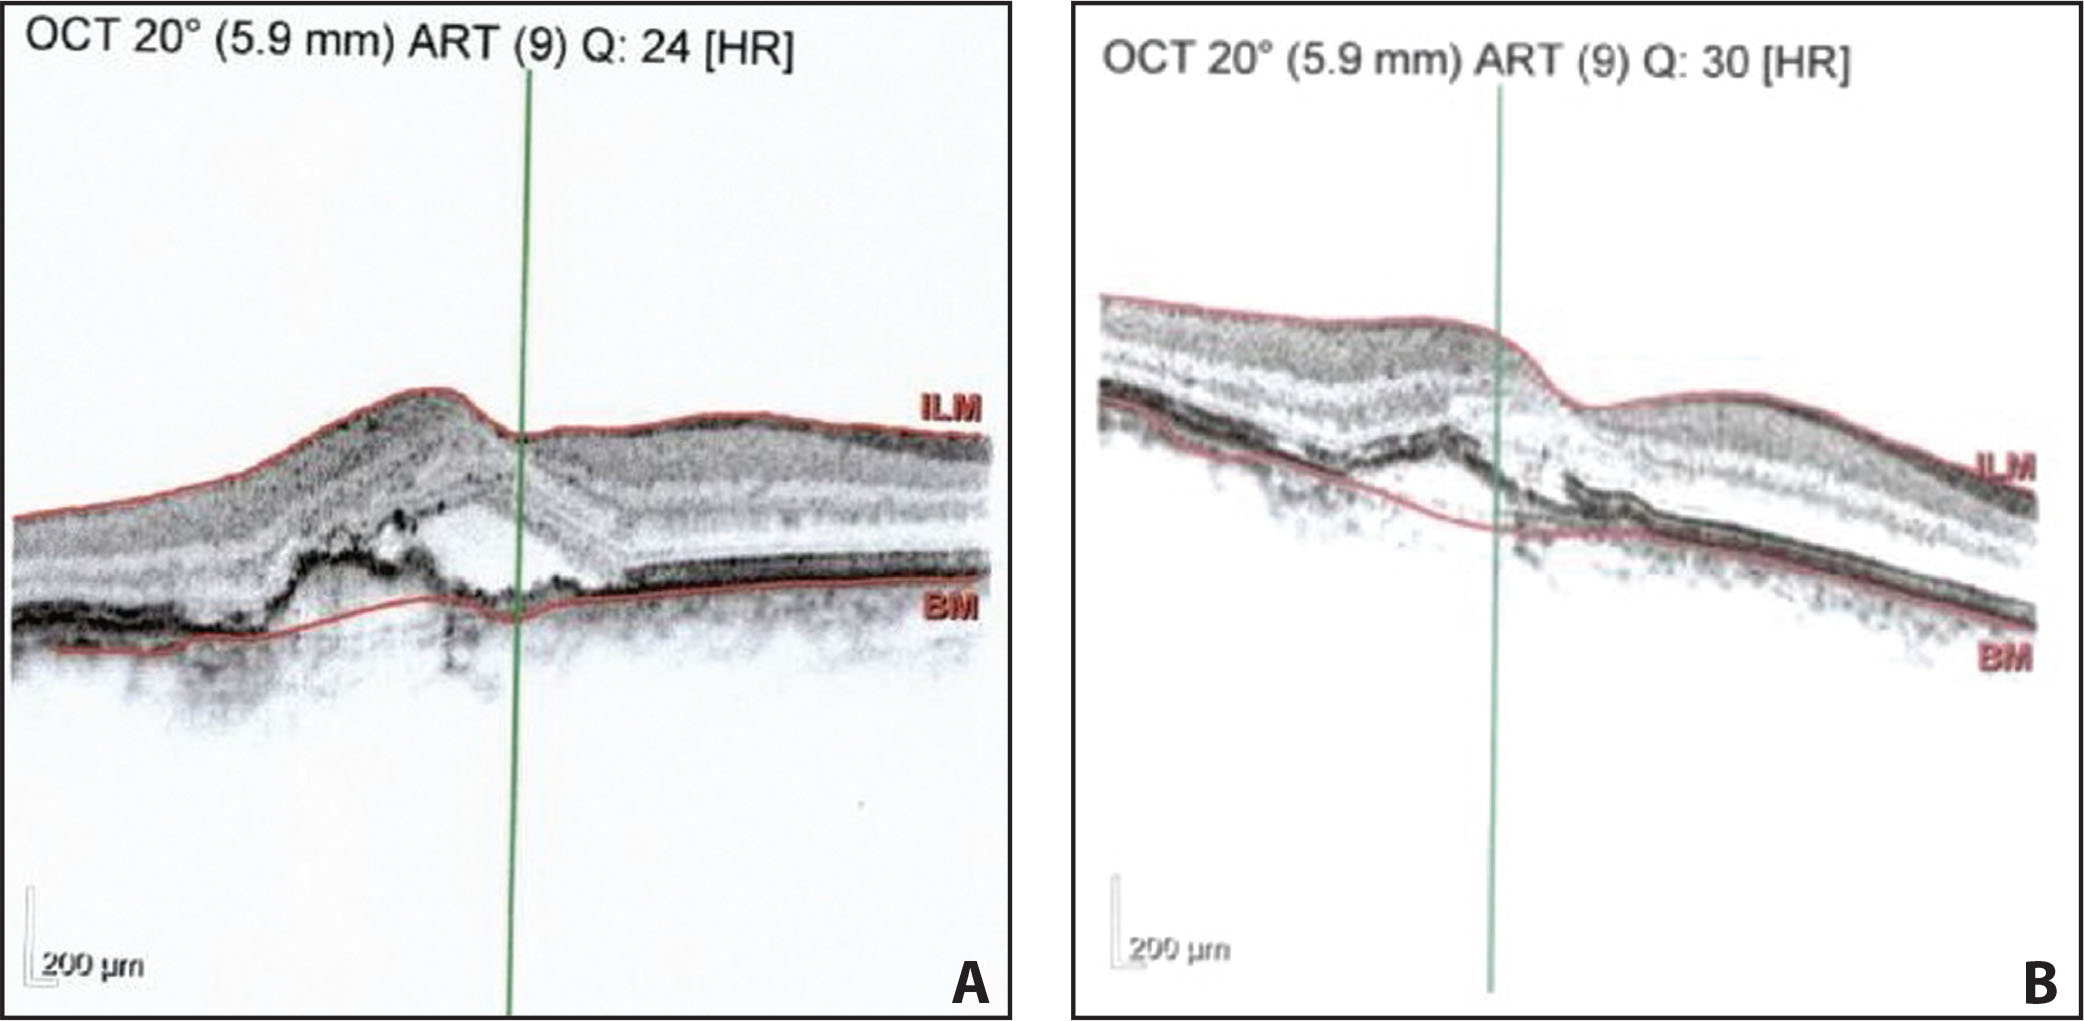 Optical coherence tomography resolution of subretinal fluid in patient C before (A) and after (B) treatment with aflibercept.